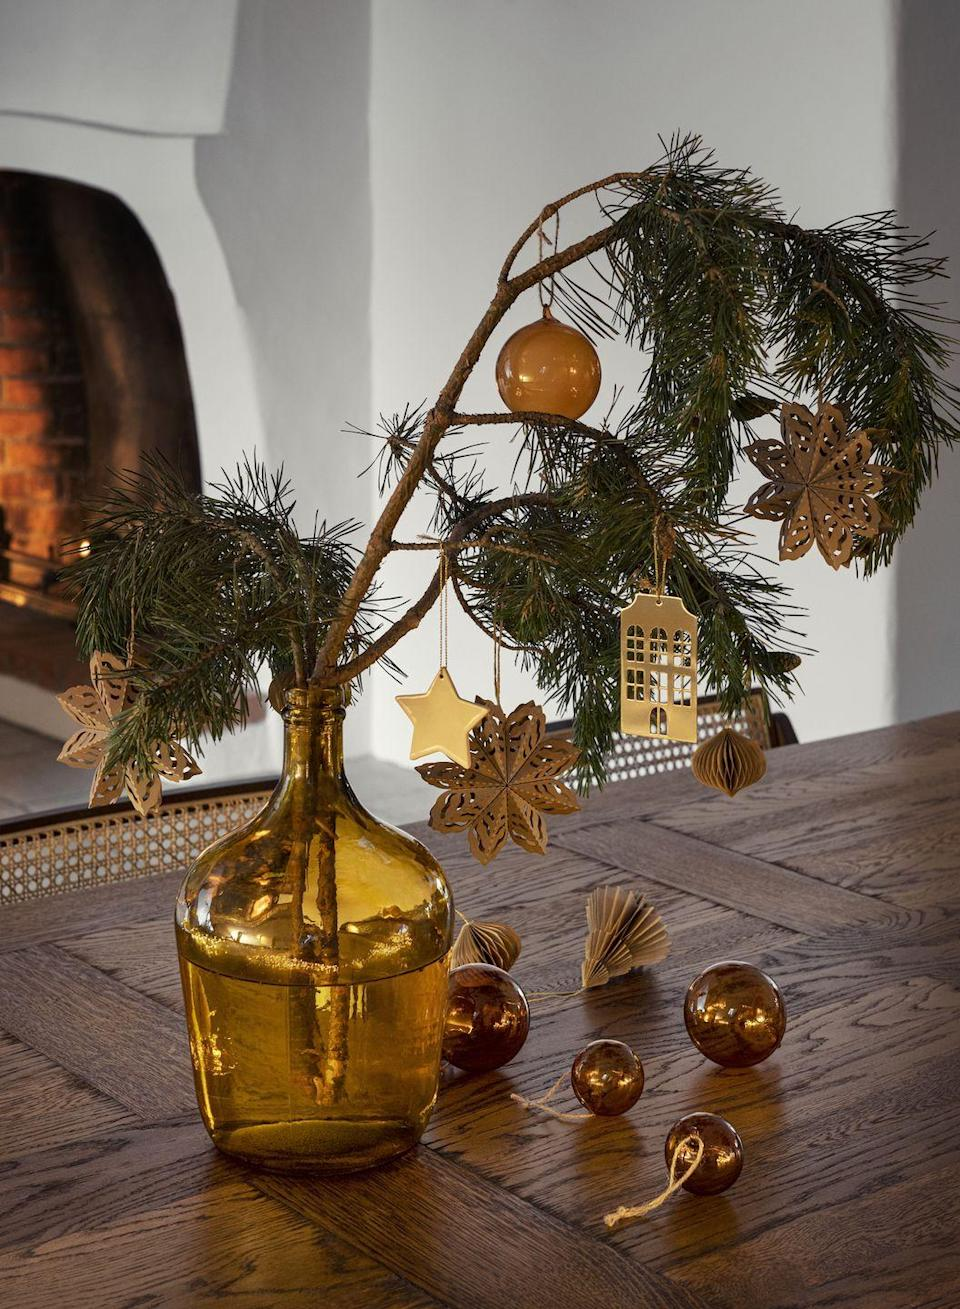 "<p>'Key pieces from the Christmas collection includes a wide range of warm blankets, seasonal cushion covers and plump vases in recycled glass,' says the team. </p><p>We've got our eye on this recycled glass vase, perfect for filling with some festive foliage. </p><p><a class=""link rapid-noclick-resp"" href=""https://go.redirectingat.com?id=127X1599956&url=https%3A%2F%2Fwww2.hm.com%2Fen_gb%2Fhome%2Fseasonal-trending%2Fchristmas.html&sref=https%3A%2F%2Fwww.housebeautiful.com%2Fuk%2Flifestyle%2Fshopping%2Fg34268238%2Fhandm-home-christmas%2F"" rel=""nofollow noopener"" target=""_blank"" data-ylk=""slk:SHOP THE CHRISTMAS RANGE"">SHOP THE CHRISTMAS RANGE</a> </p>"